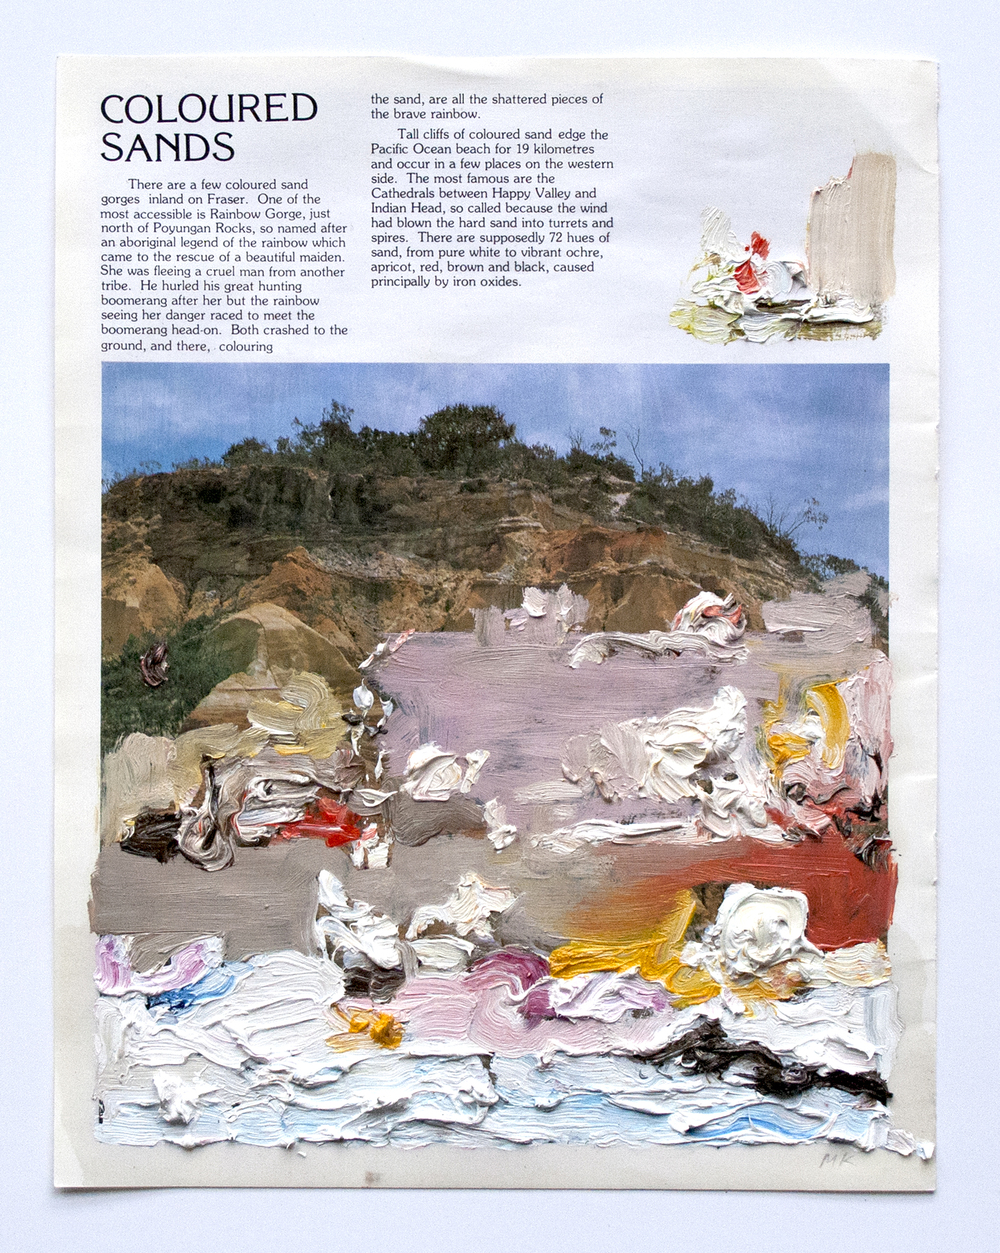 Coloured Sands  2014  Oil and PVA glue on magazine  21 x 29.7 cm